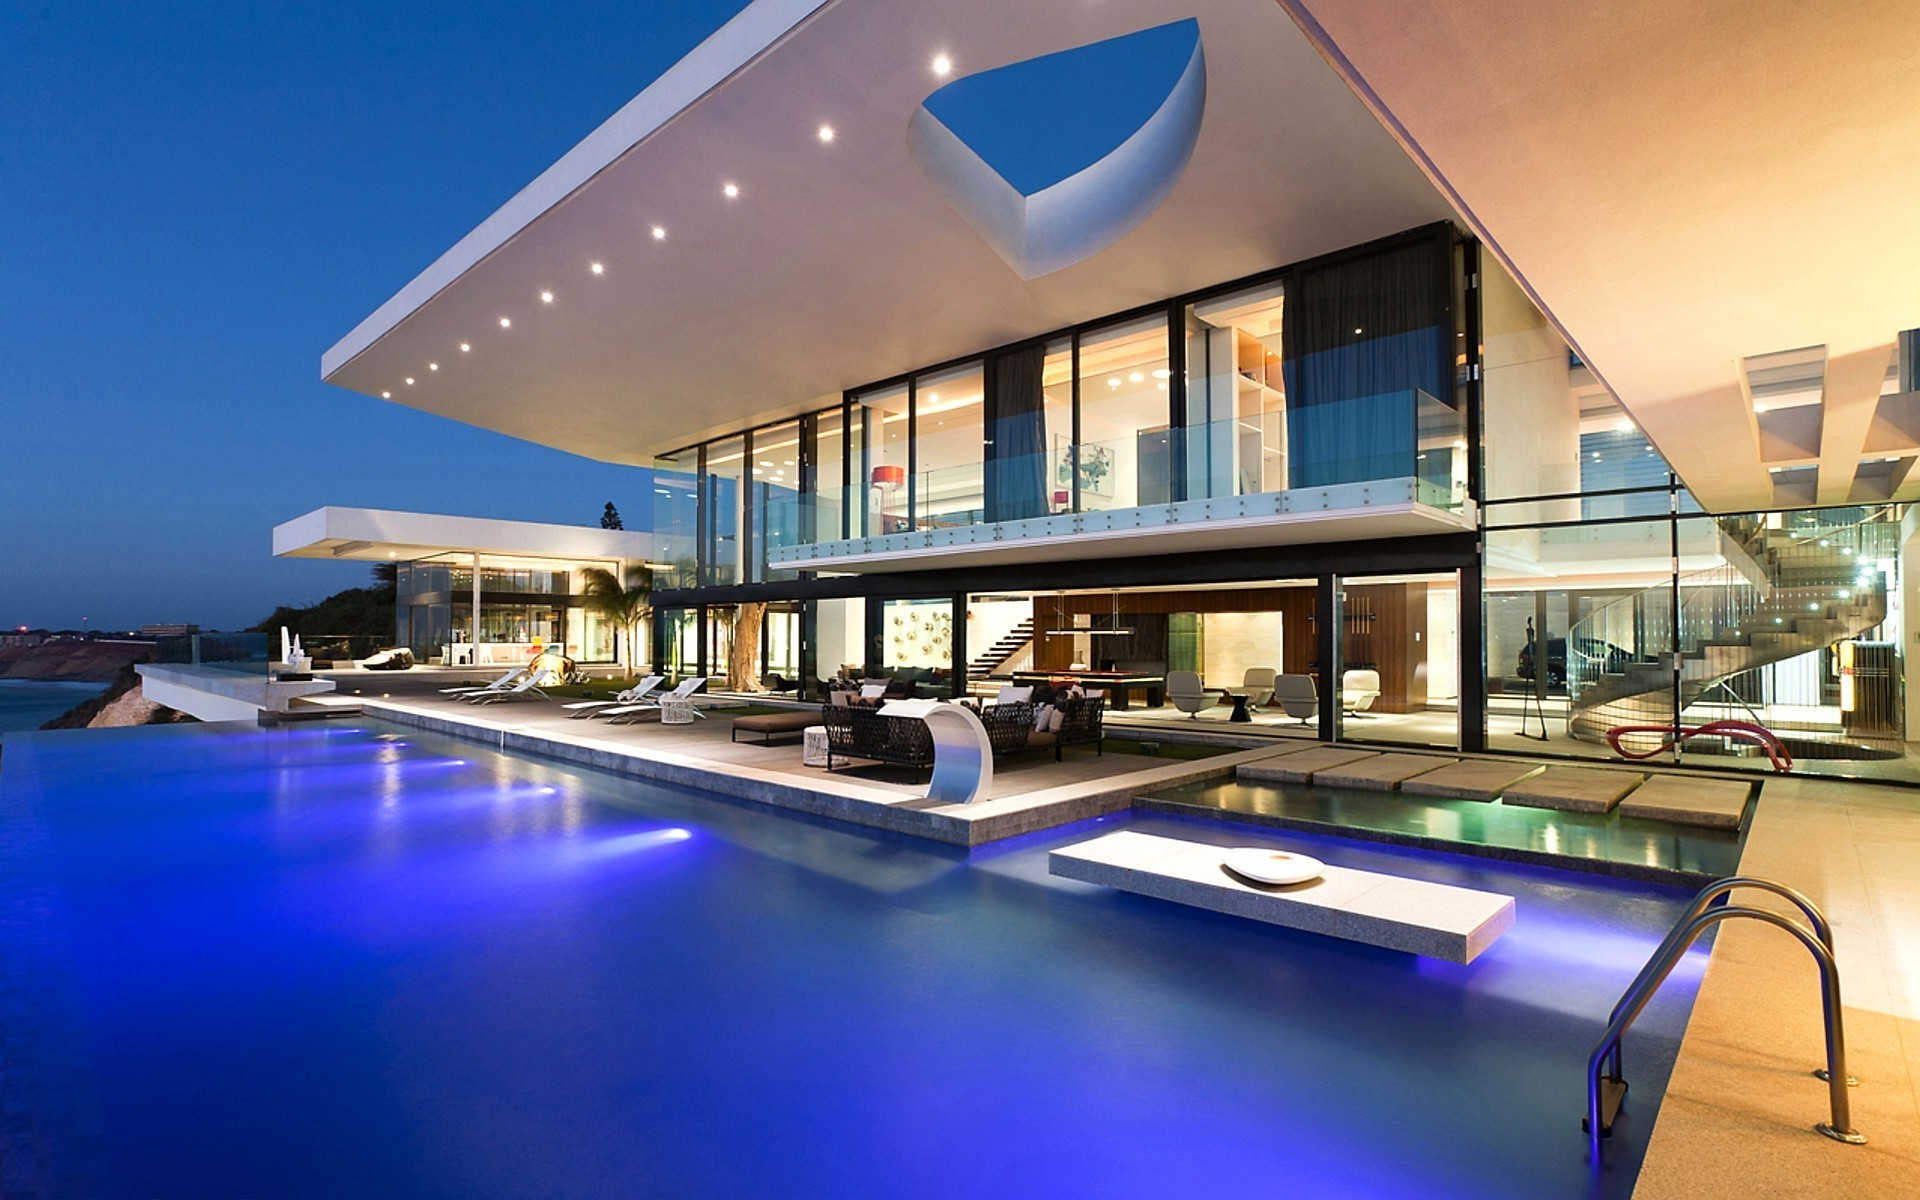 modern-house-with-a-pool-15037